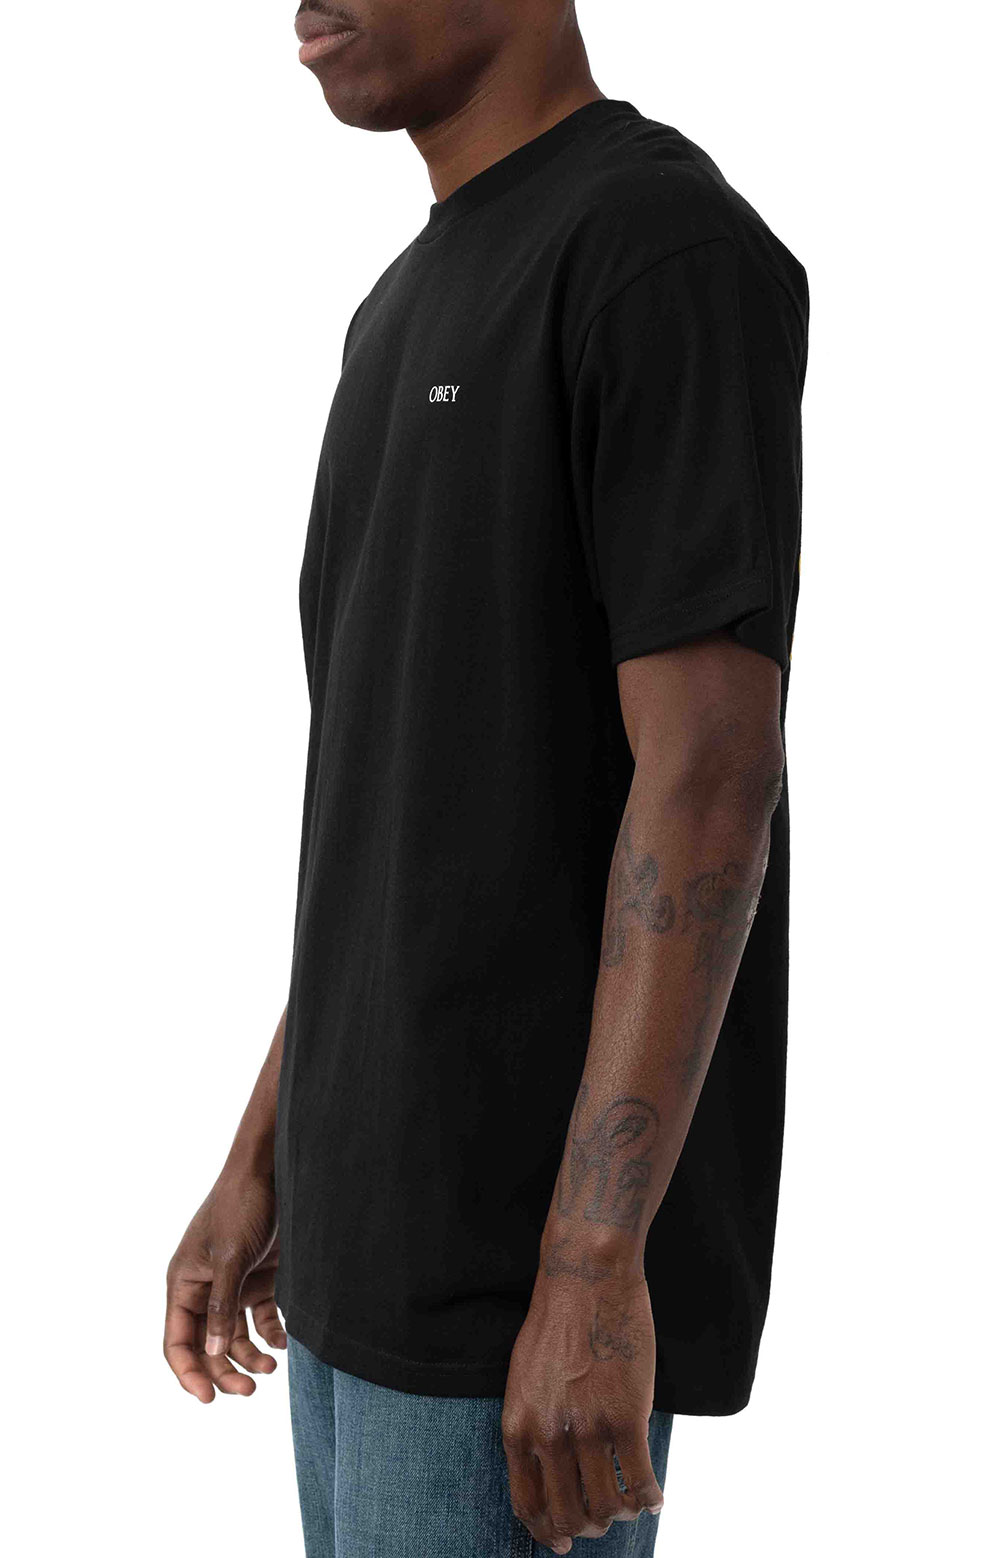 Obey Paint It Black T-Shirt - Black 3